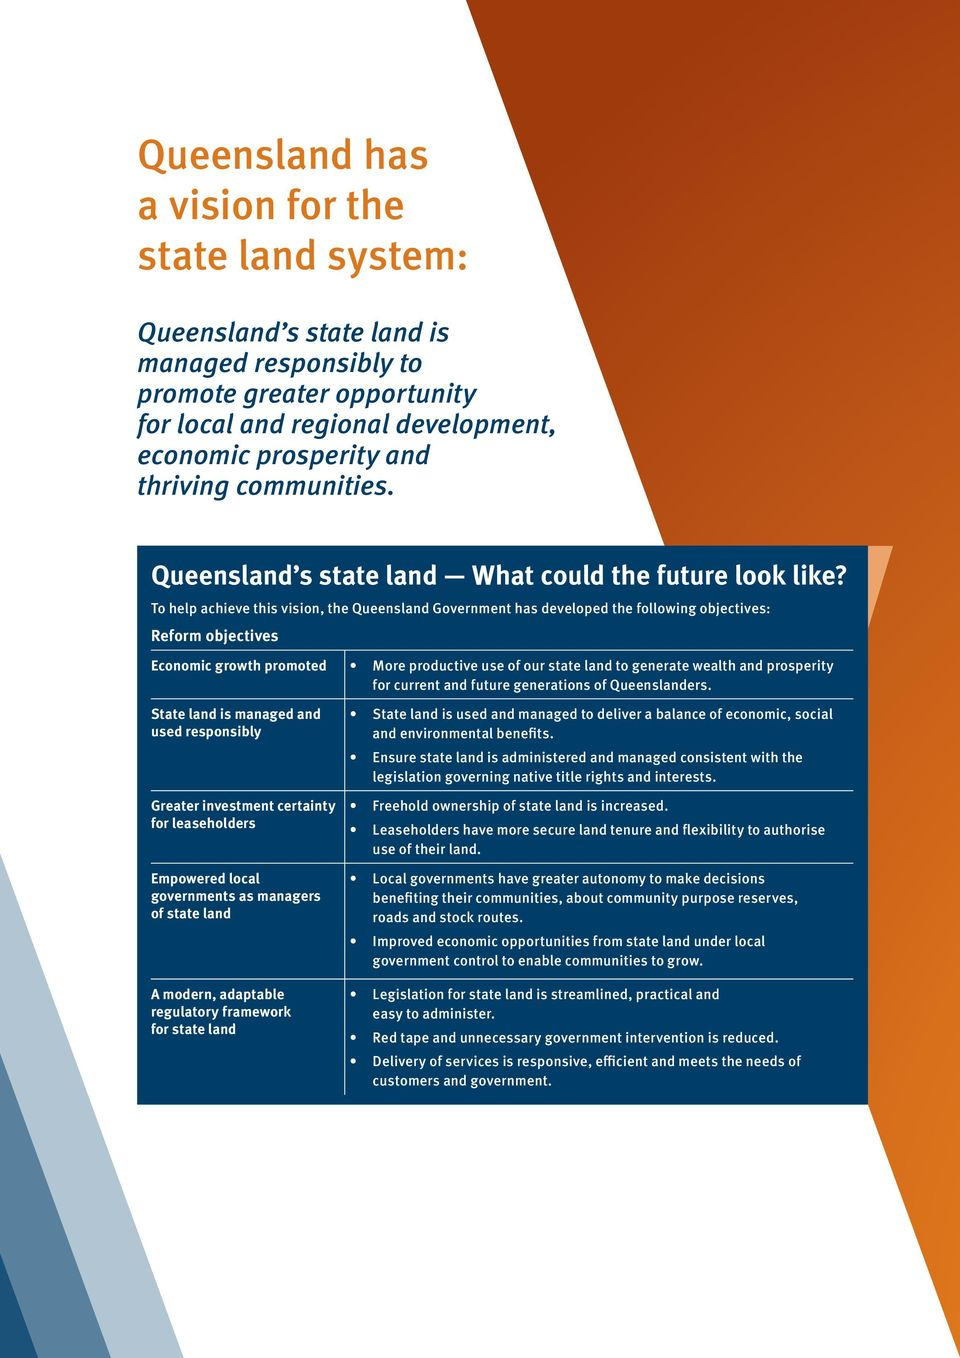 To help achieve this vision, the Queensland Government has developed the following objectives: Reform objectives Economic growth promoted More productive use of our state land to generate wealth and